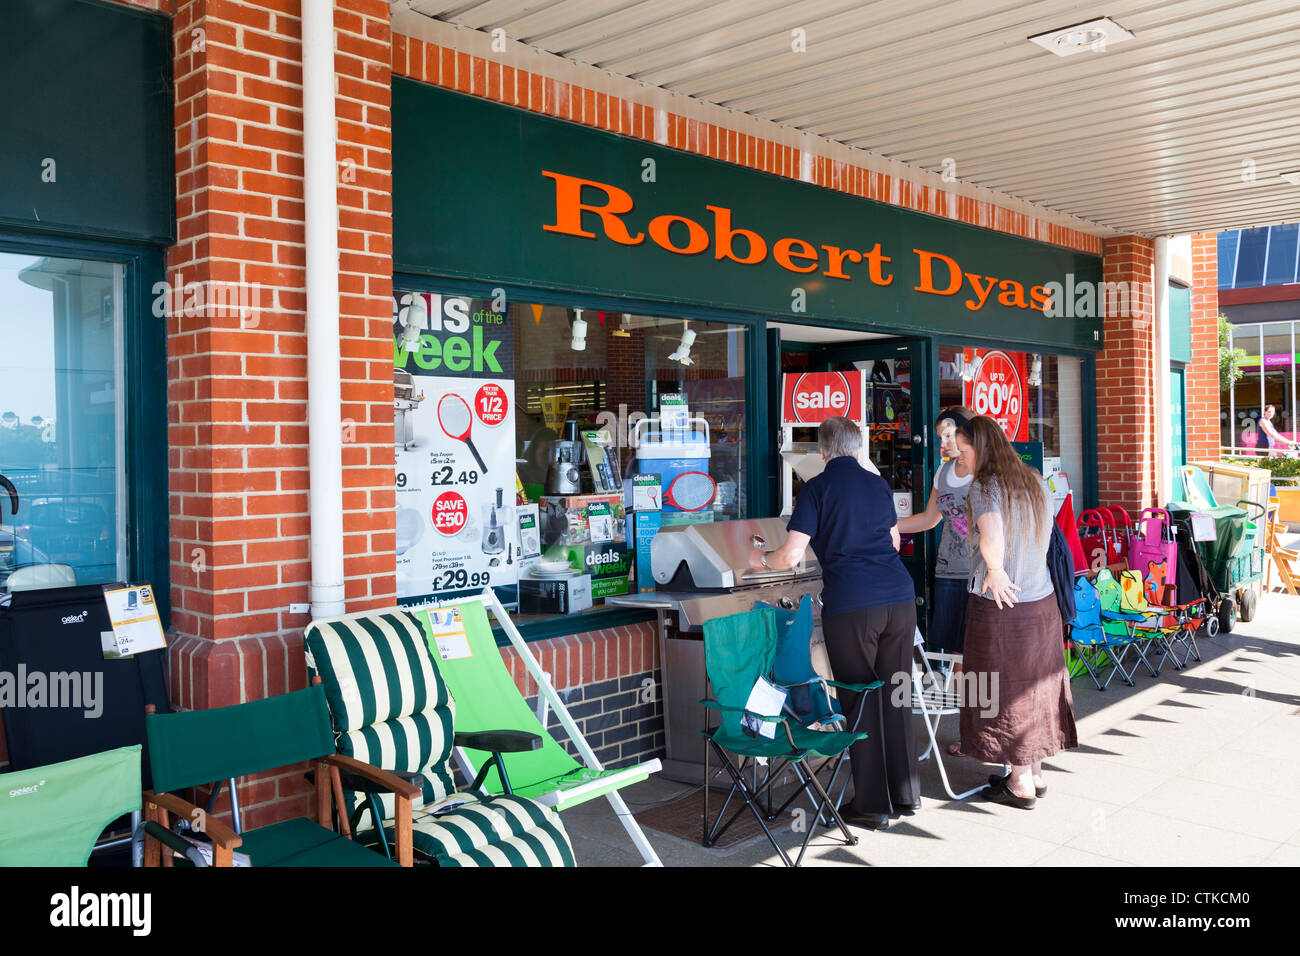 Robert Dyas shop front with goods on display outside - Stock Image